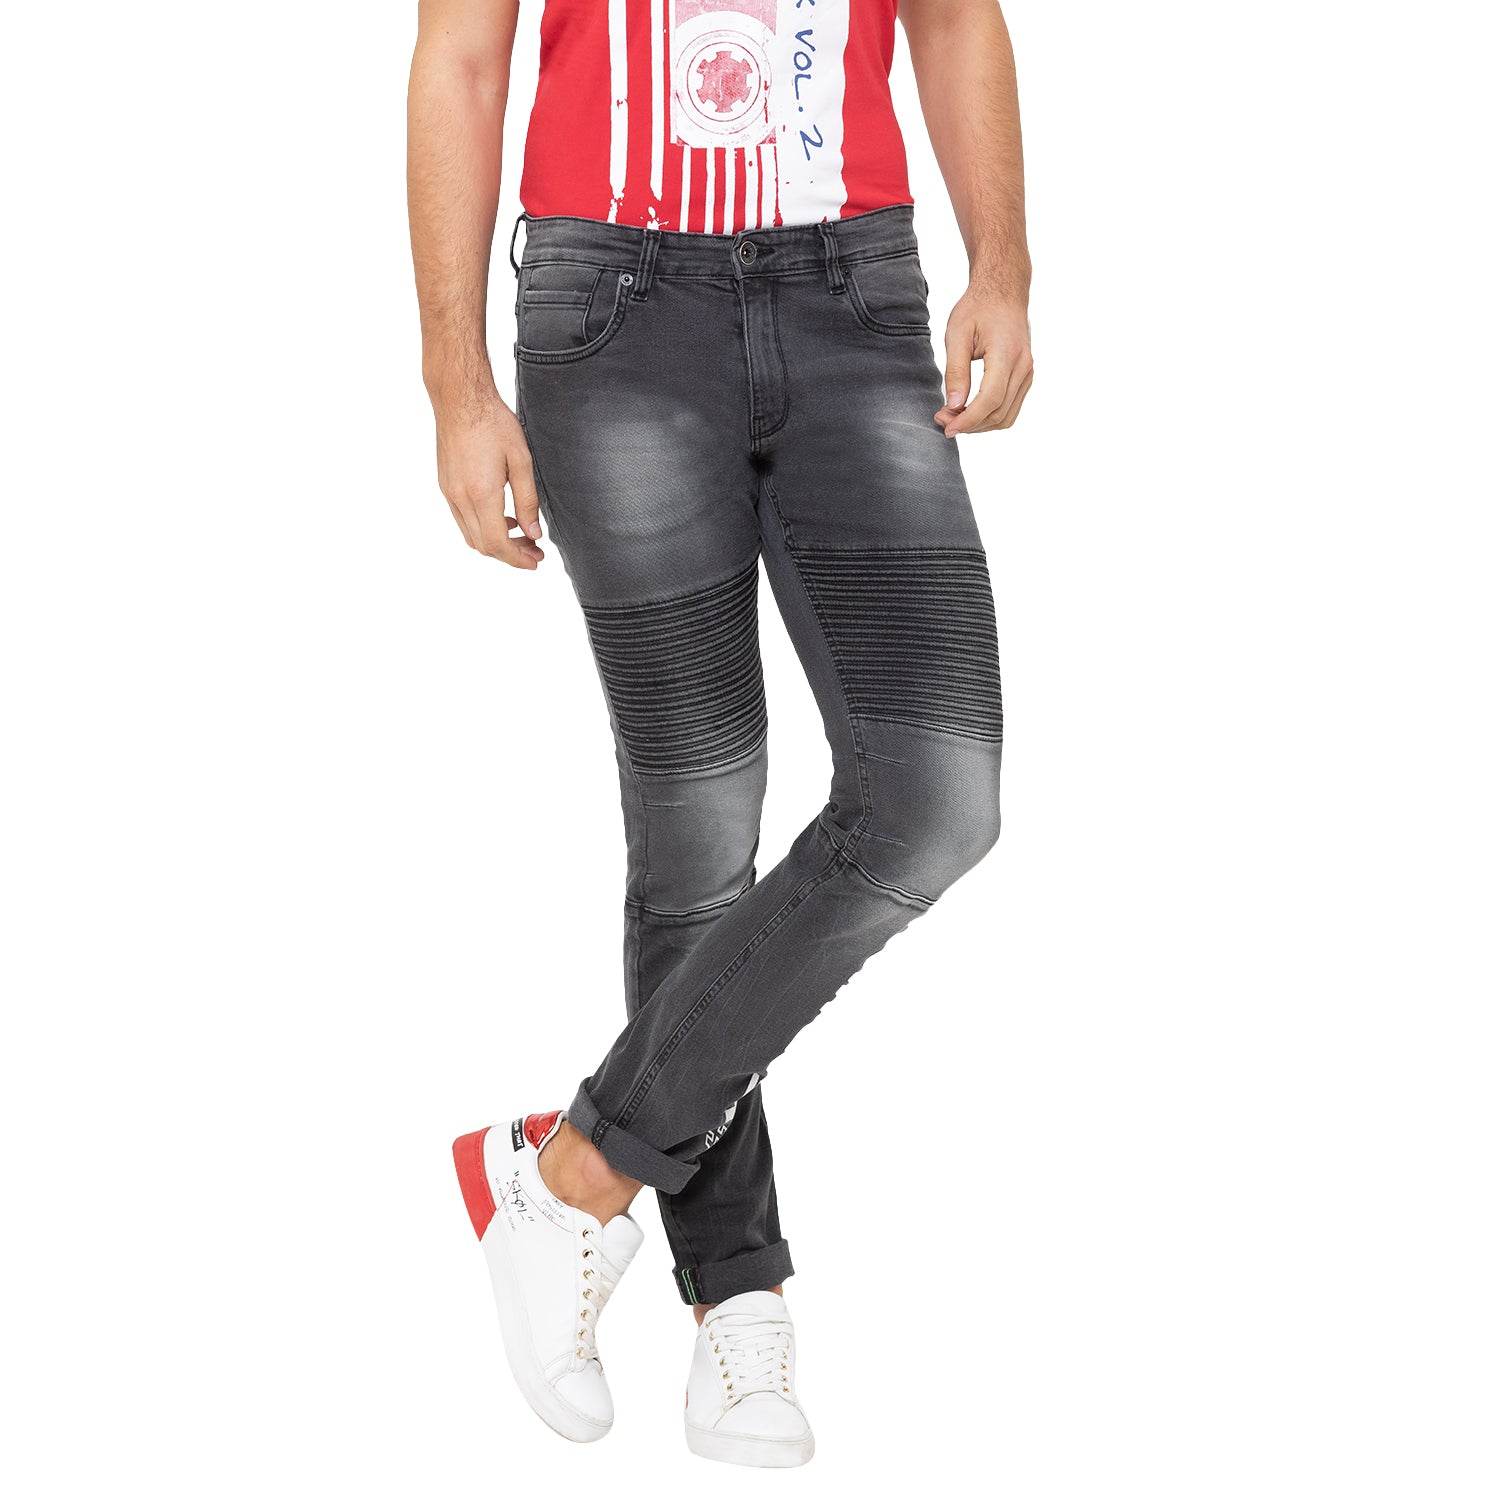 Globus Charcoal Washed Clean Look Jeans-6